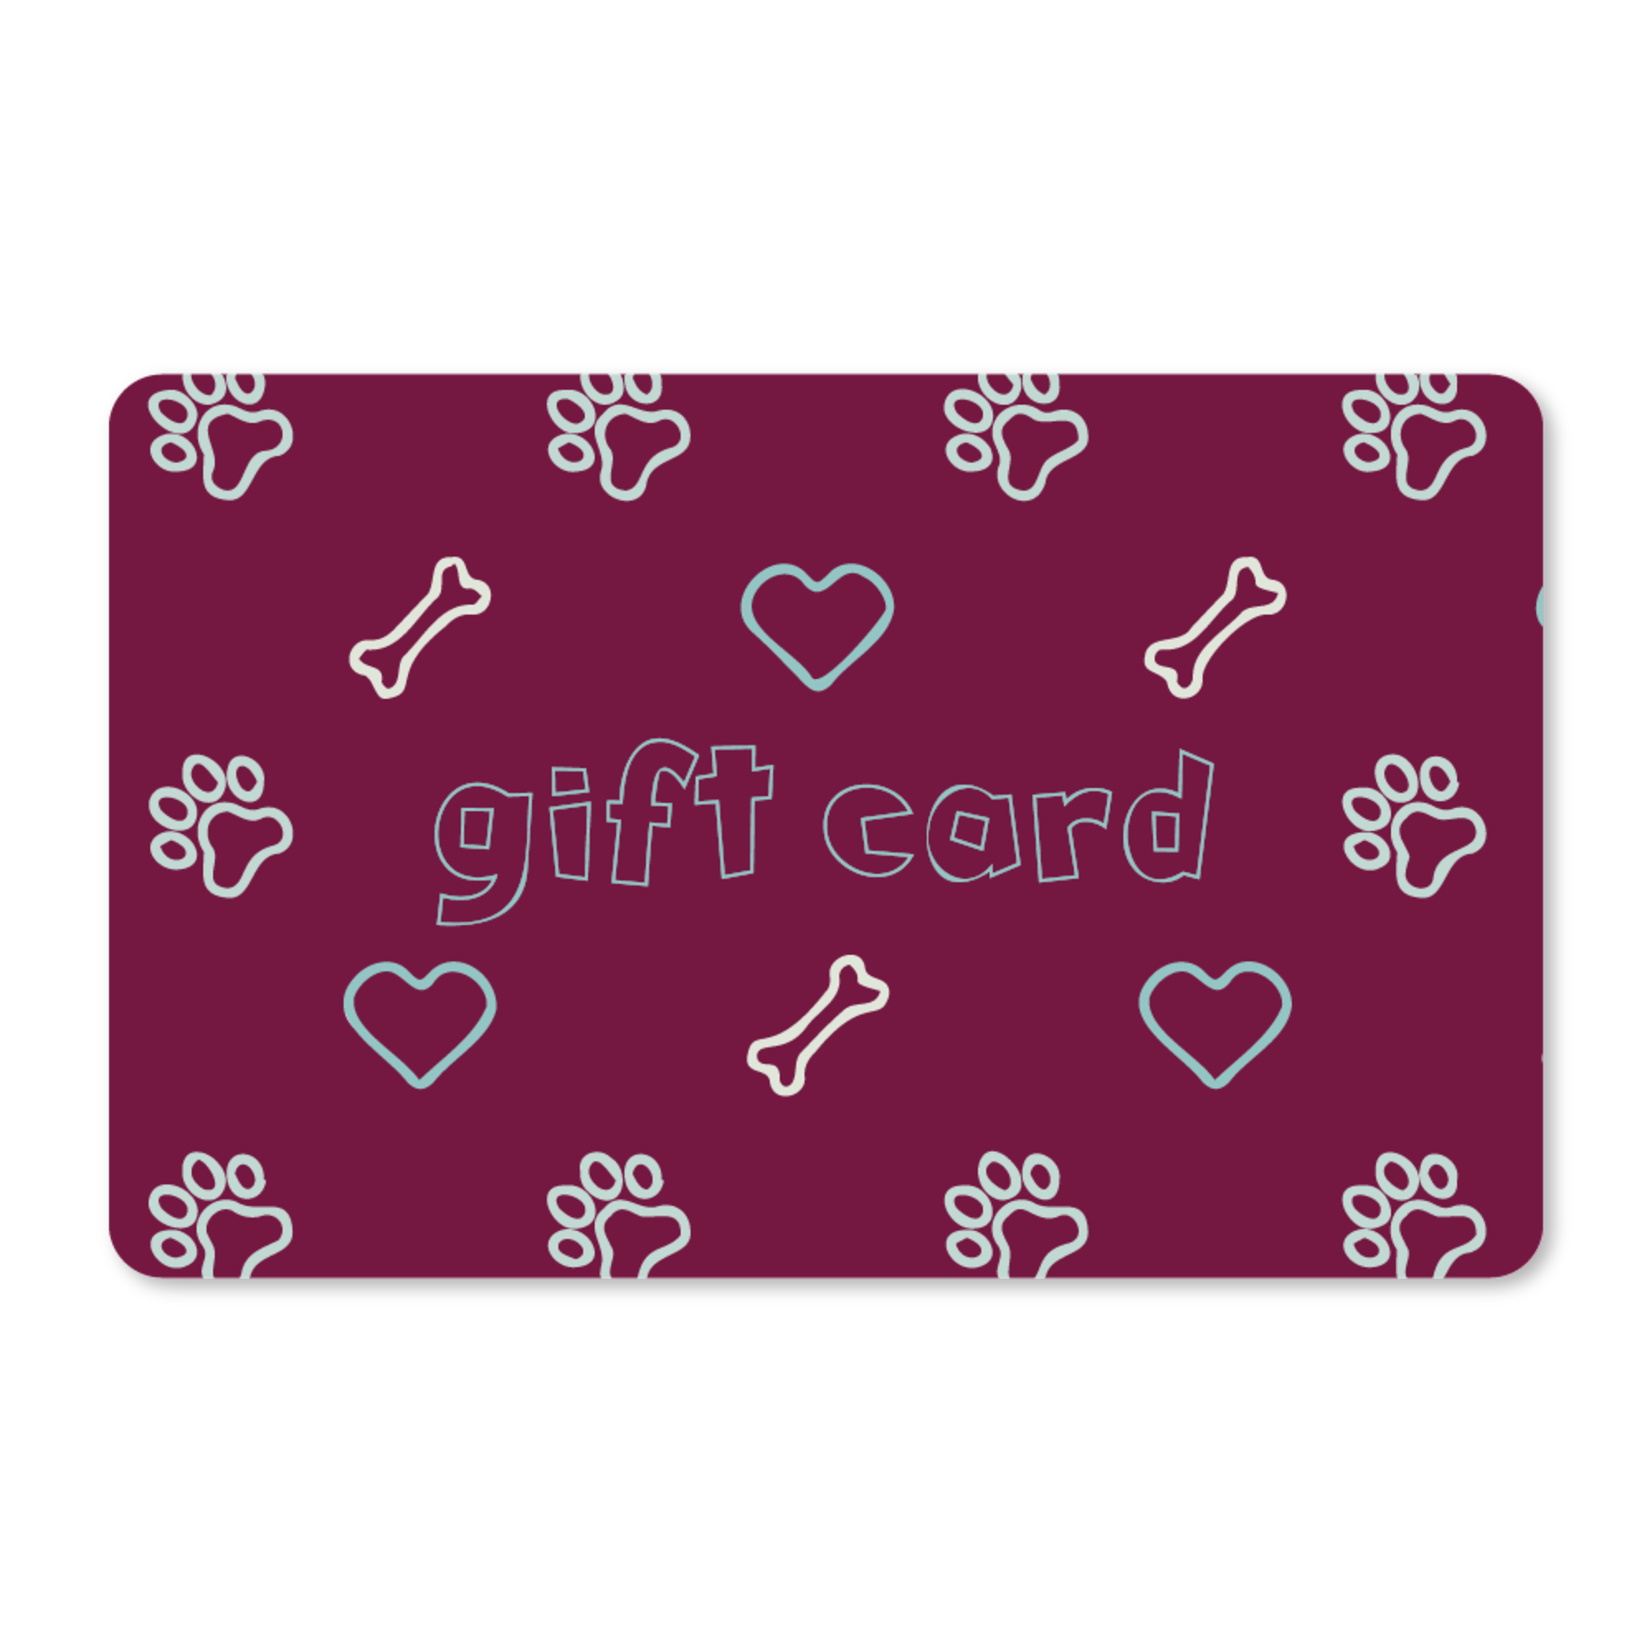 Gift Cards - Dog Love